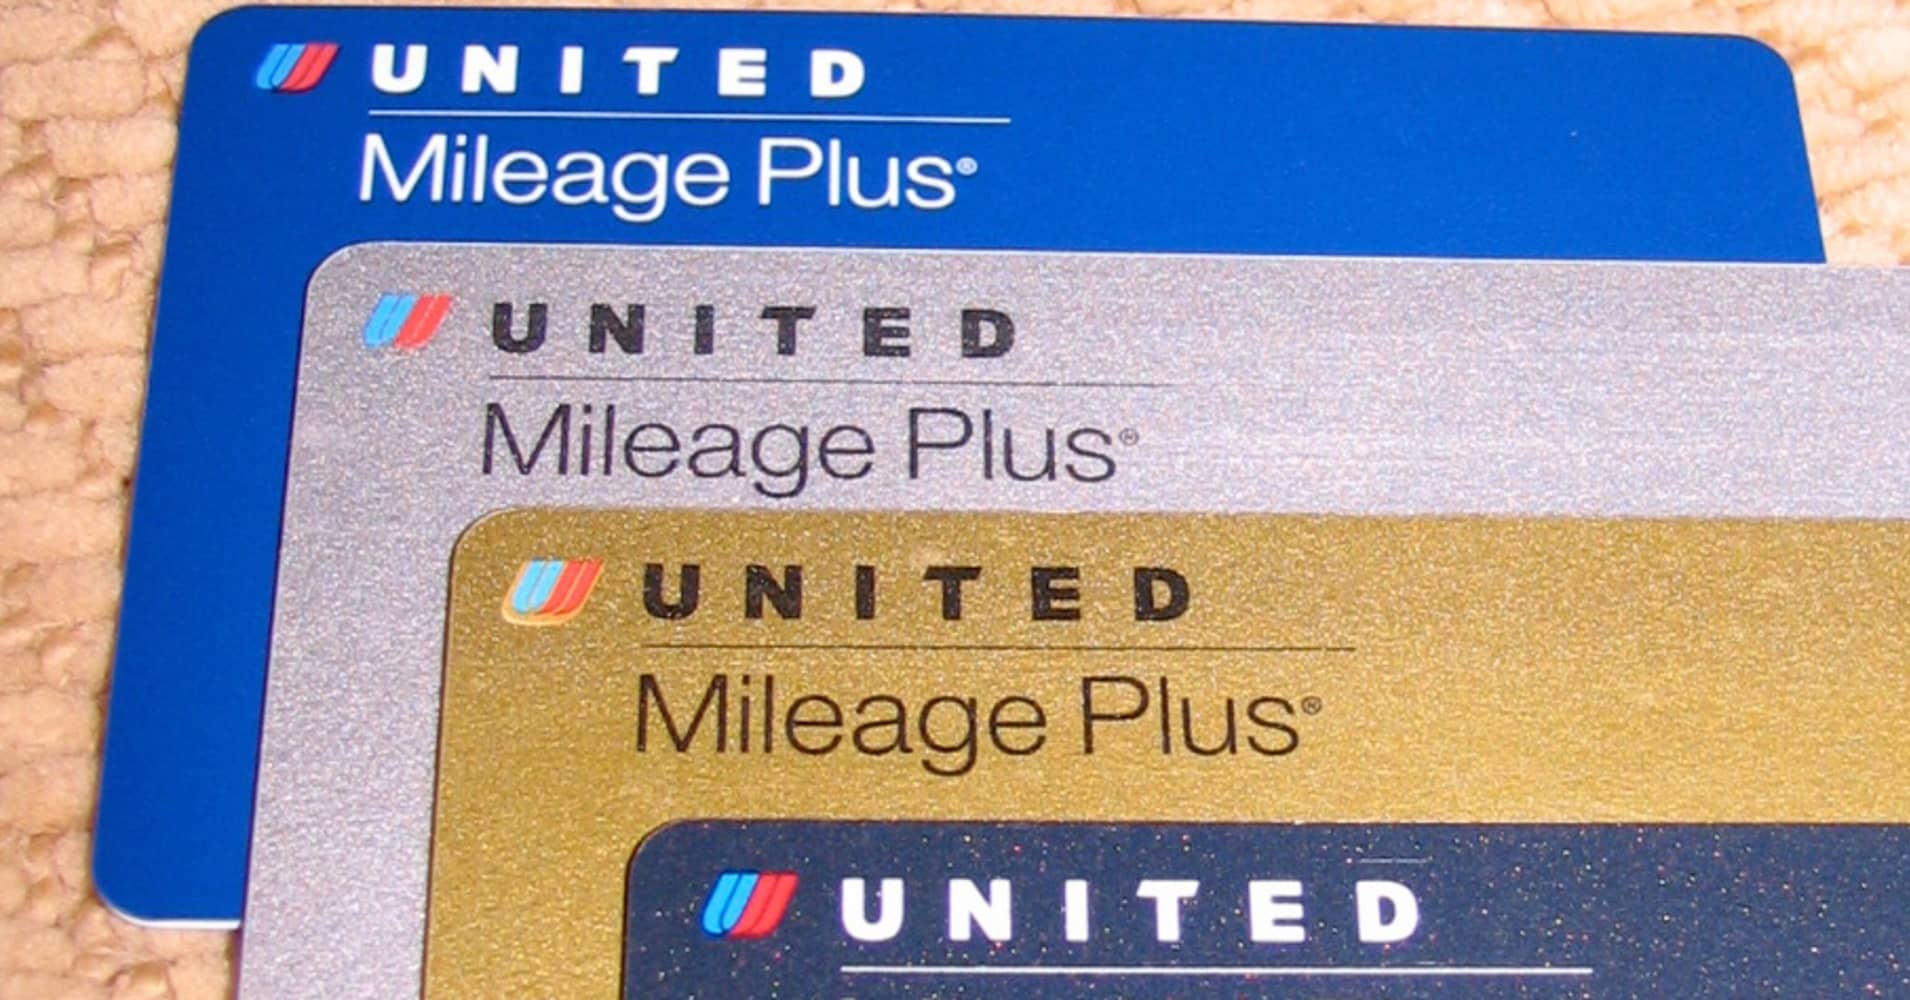 United Credit Card Customer Service United Airlines Adds Spending Requirement For Elite Status